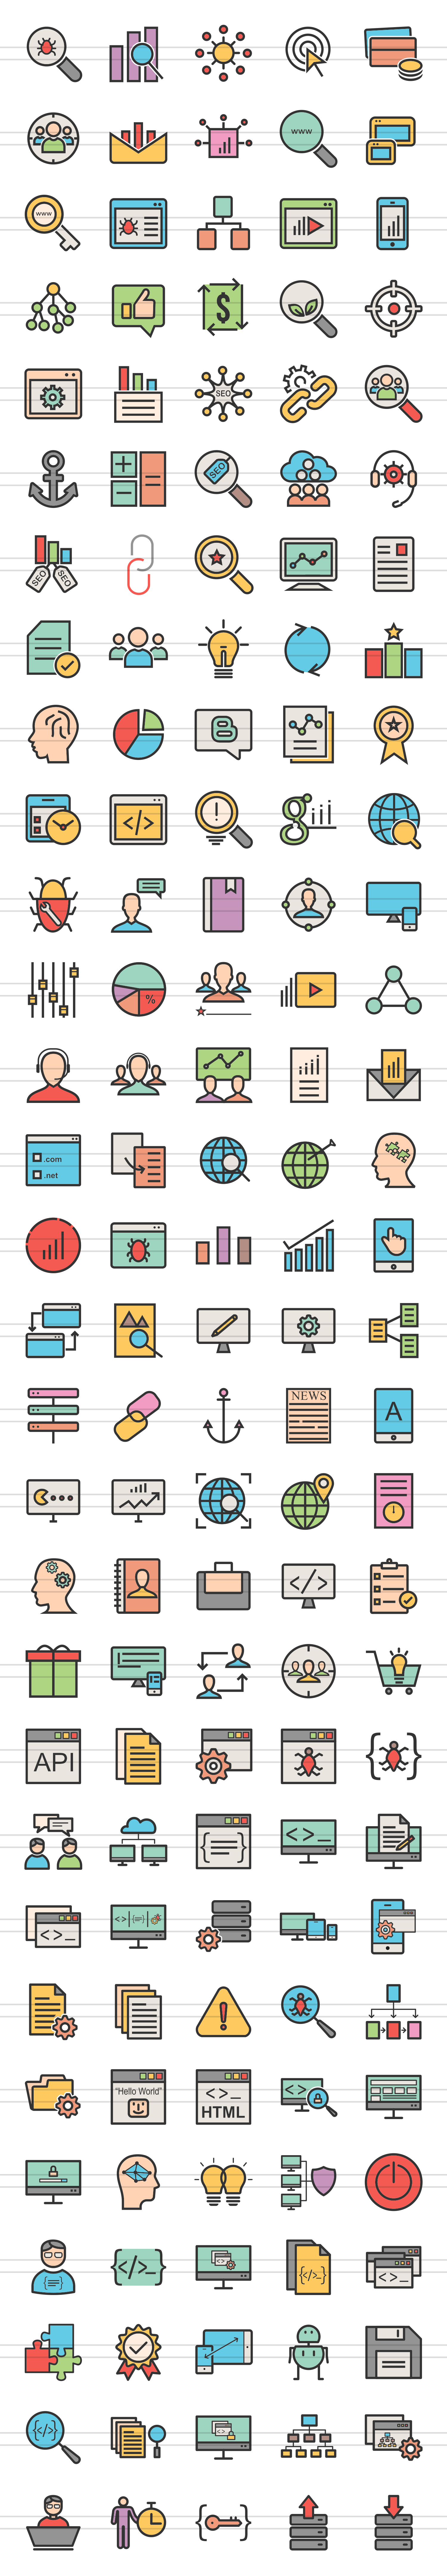 150 SEO & Development Filled Line Icons example image 6